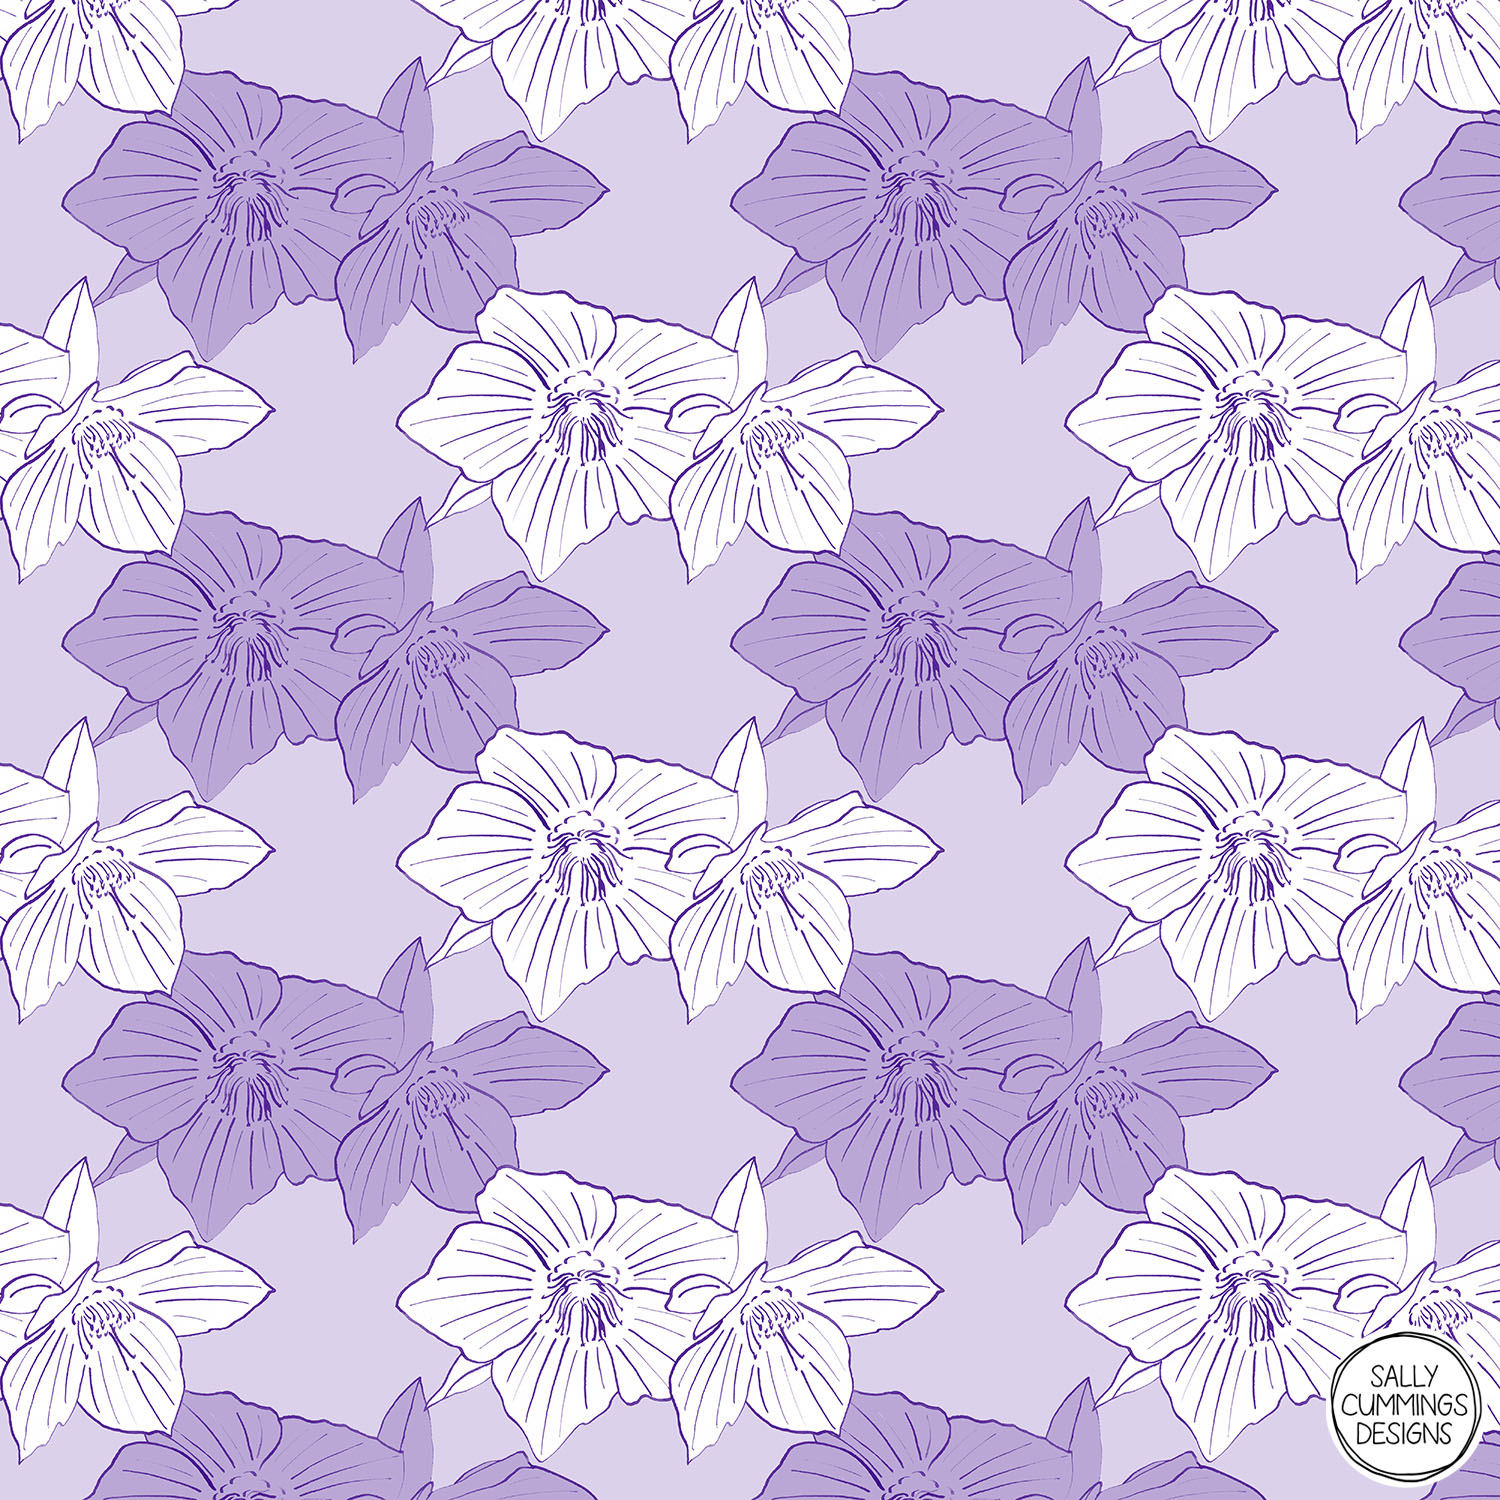 Sally Cummings Designs - Purple Hellebores Pattern